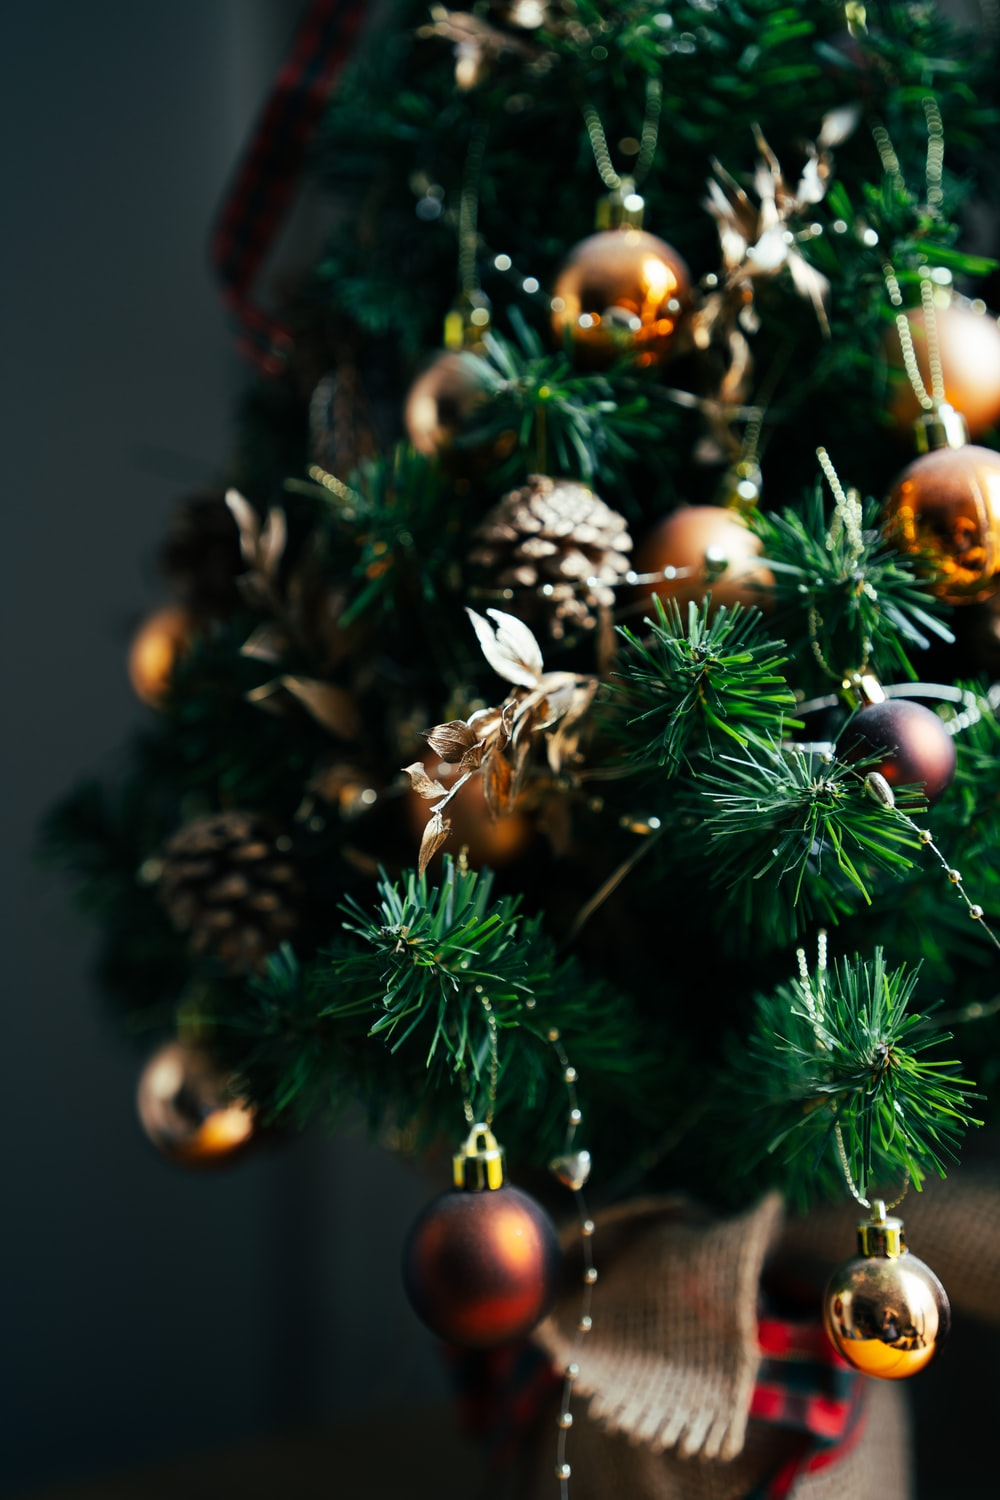 green pine tree with brown and white baubles